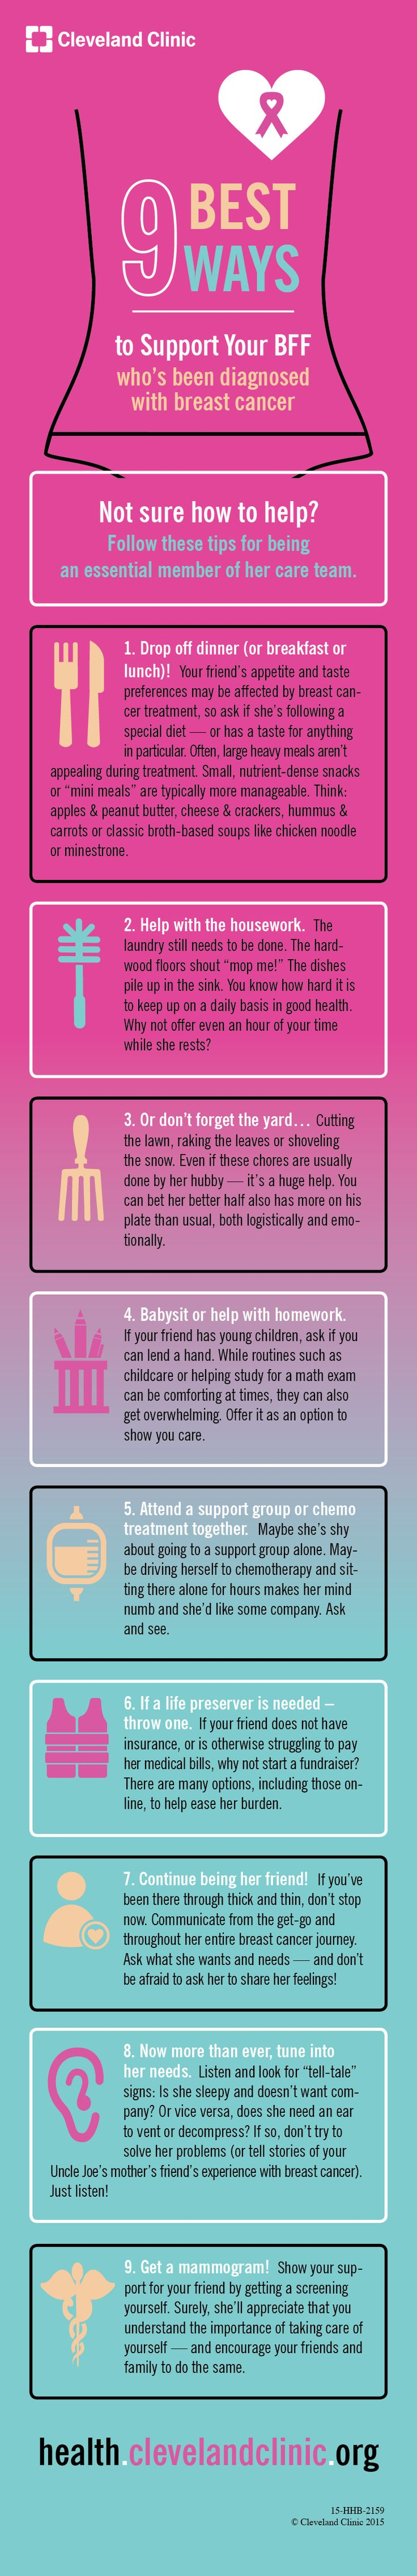 9 Best Ways to Support Your BFF with #BreastCancer. #infographic